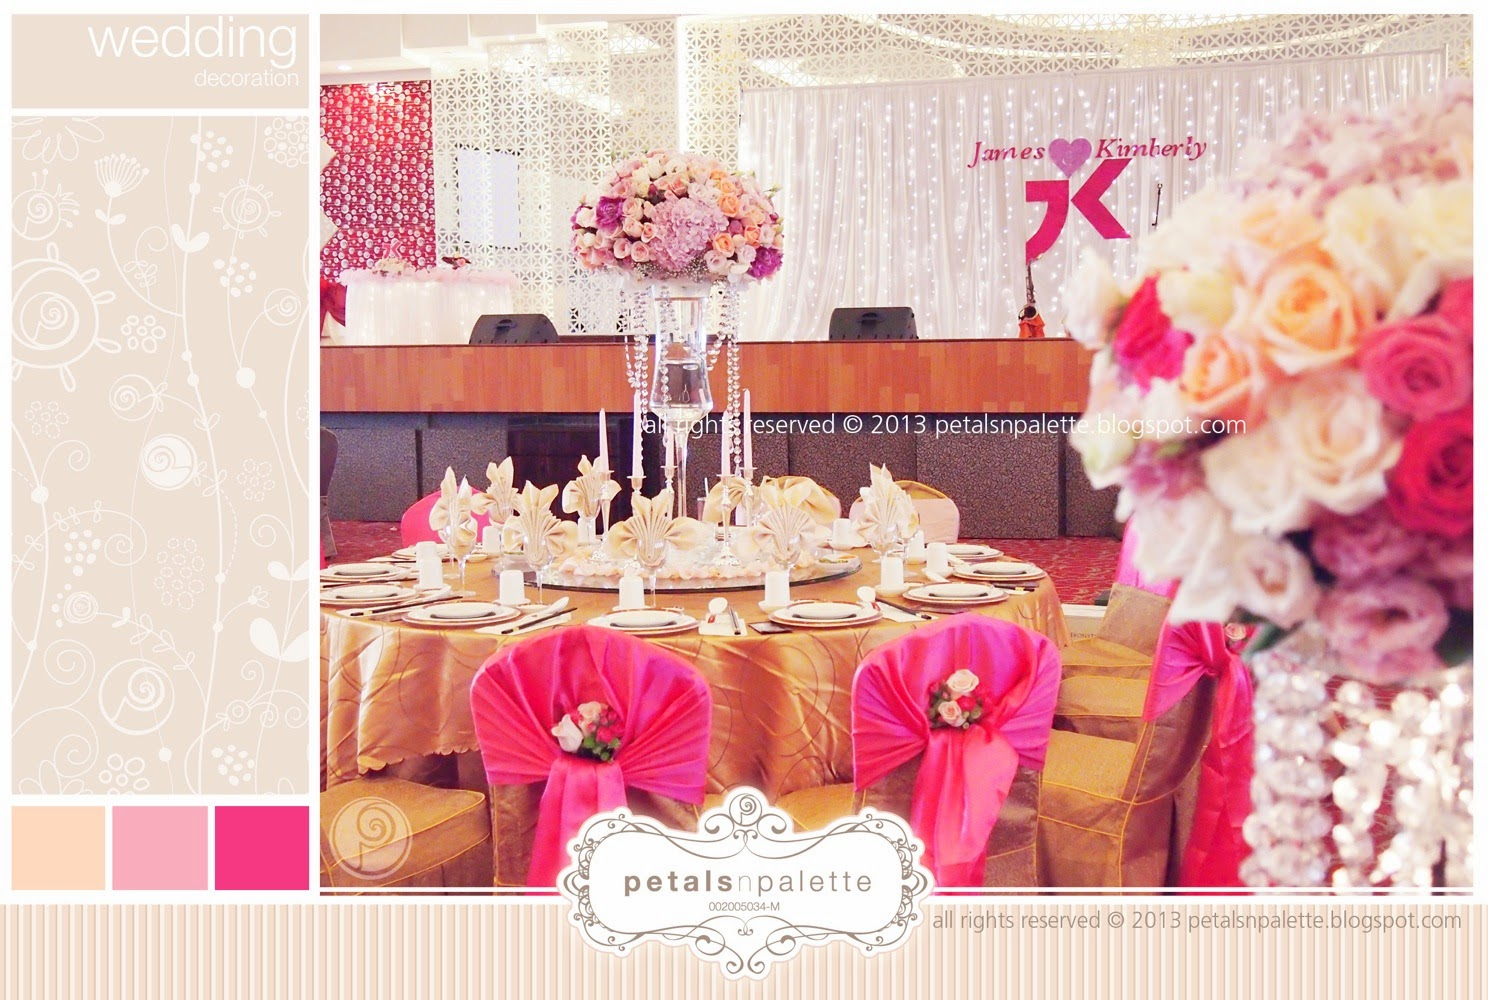 Wedding decoration sin choi wah wedding decoration wedding decoration sin choi wah junglespirit Choice Image